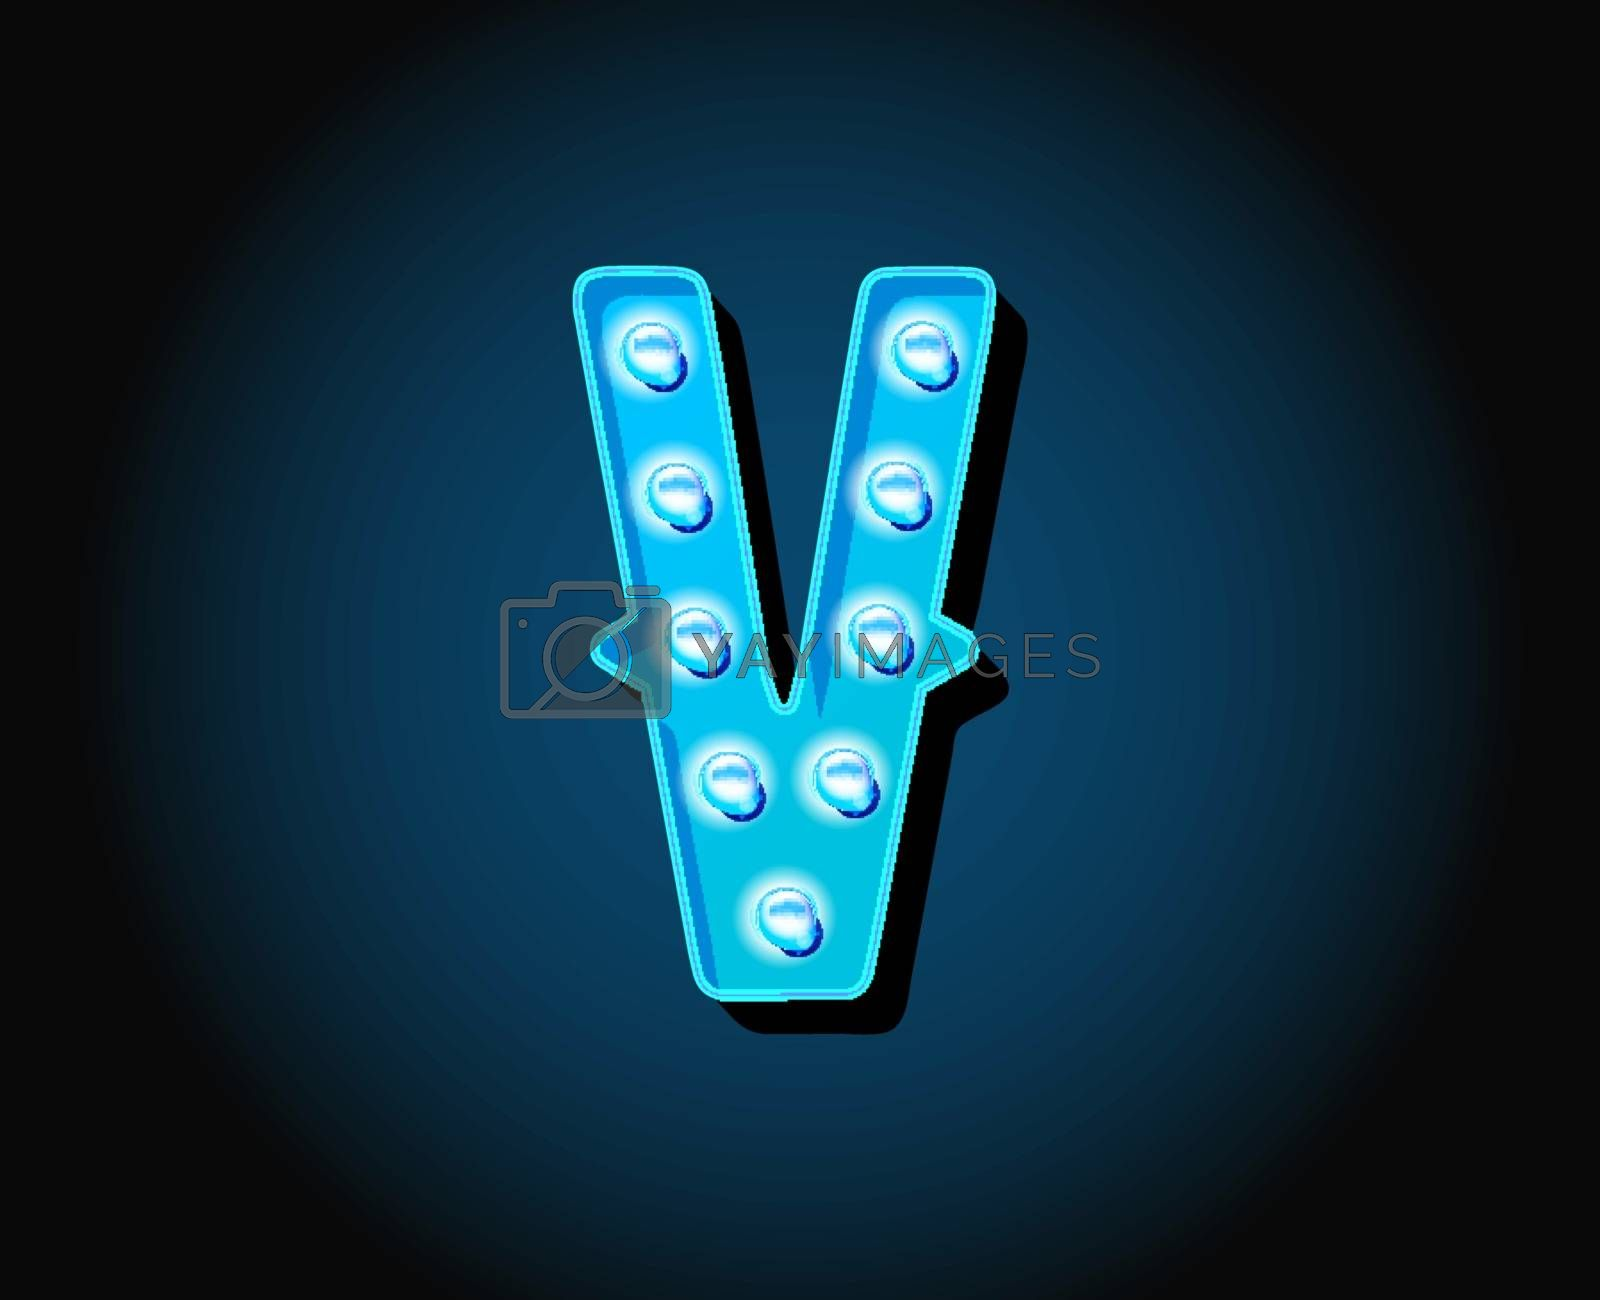 Casino or Broadway Signs style neon light bulb Alphabet Letter Character in Vector